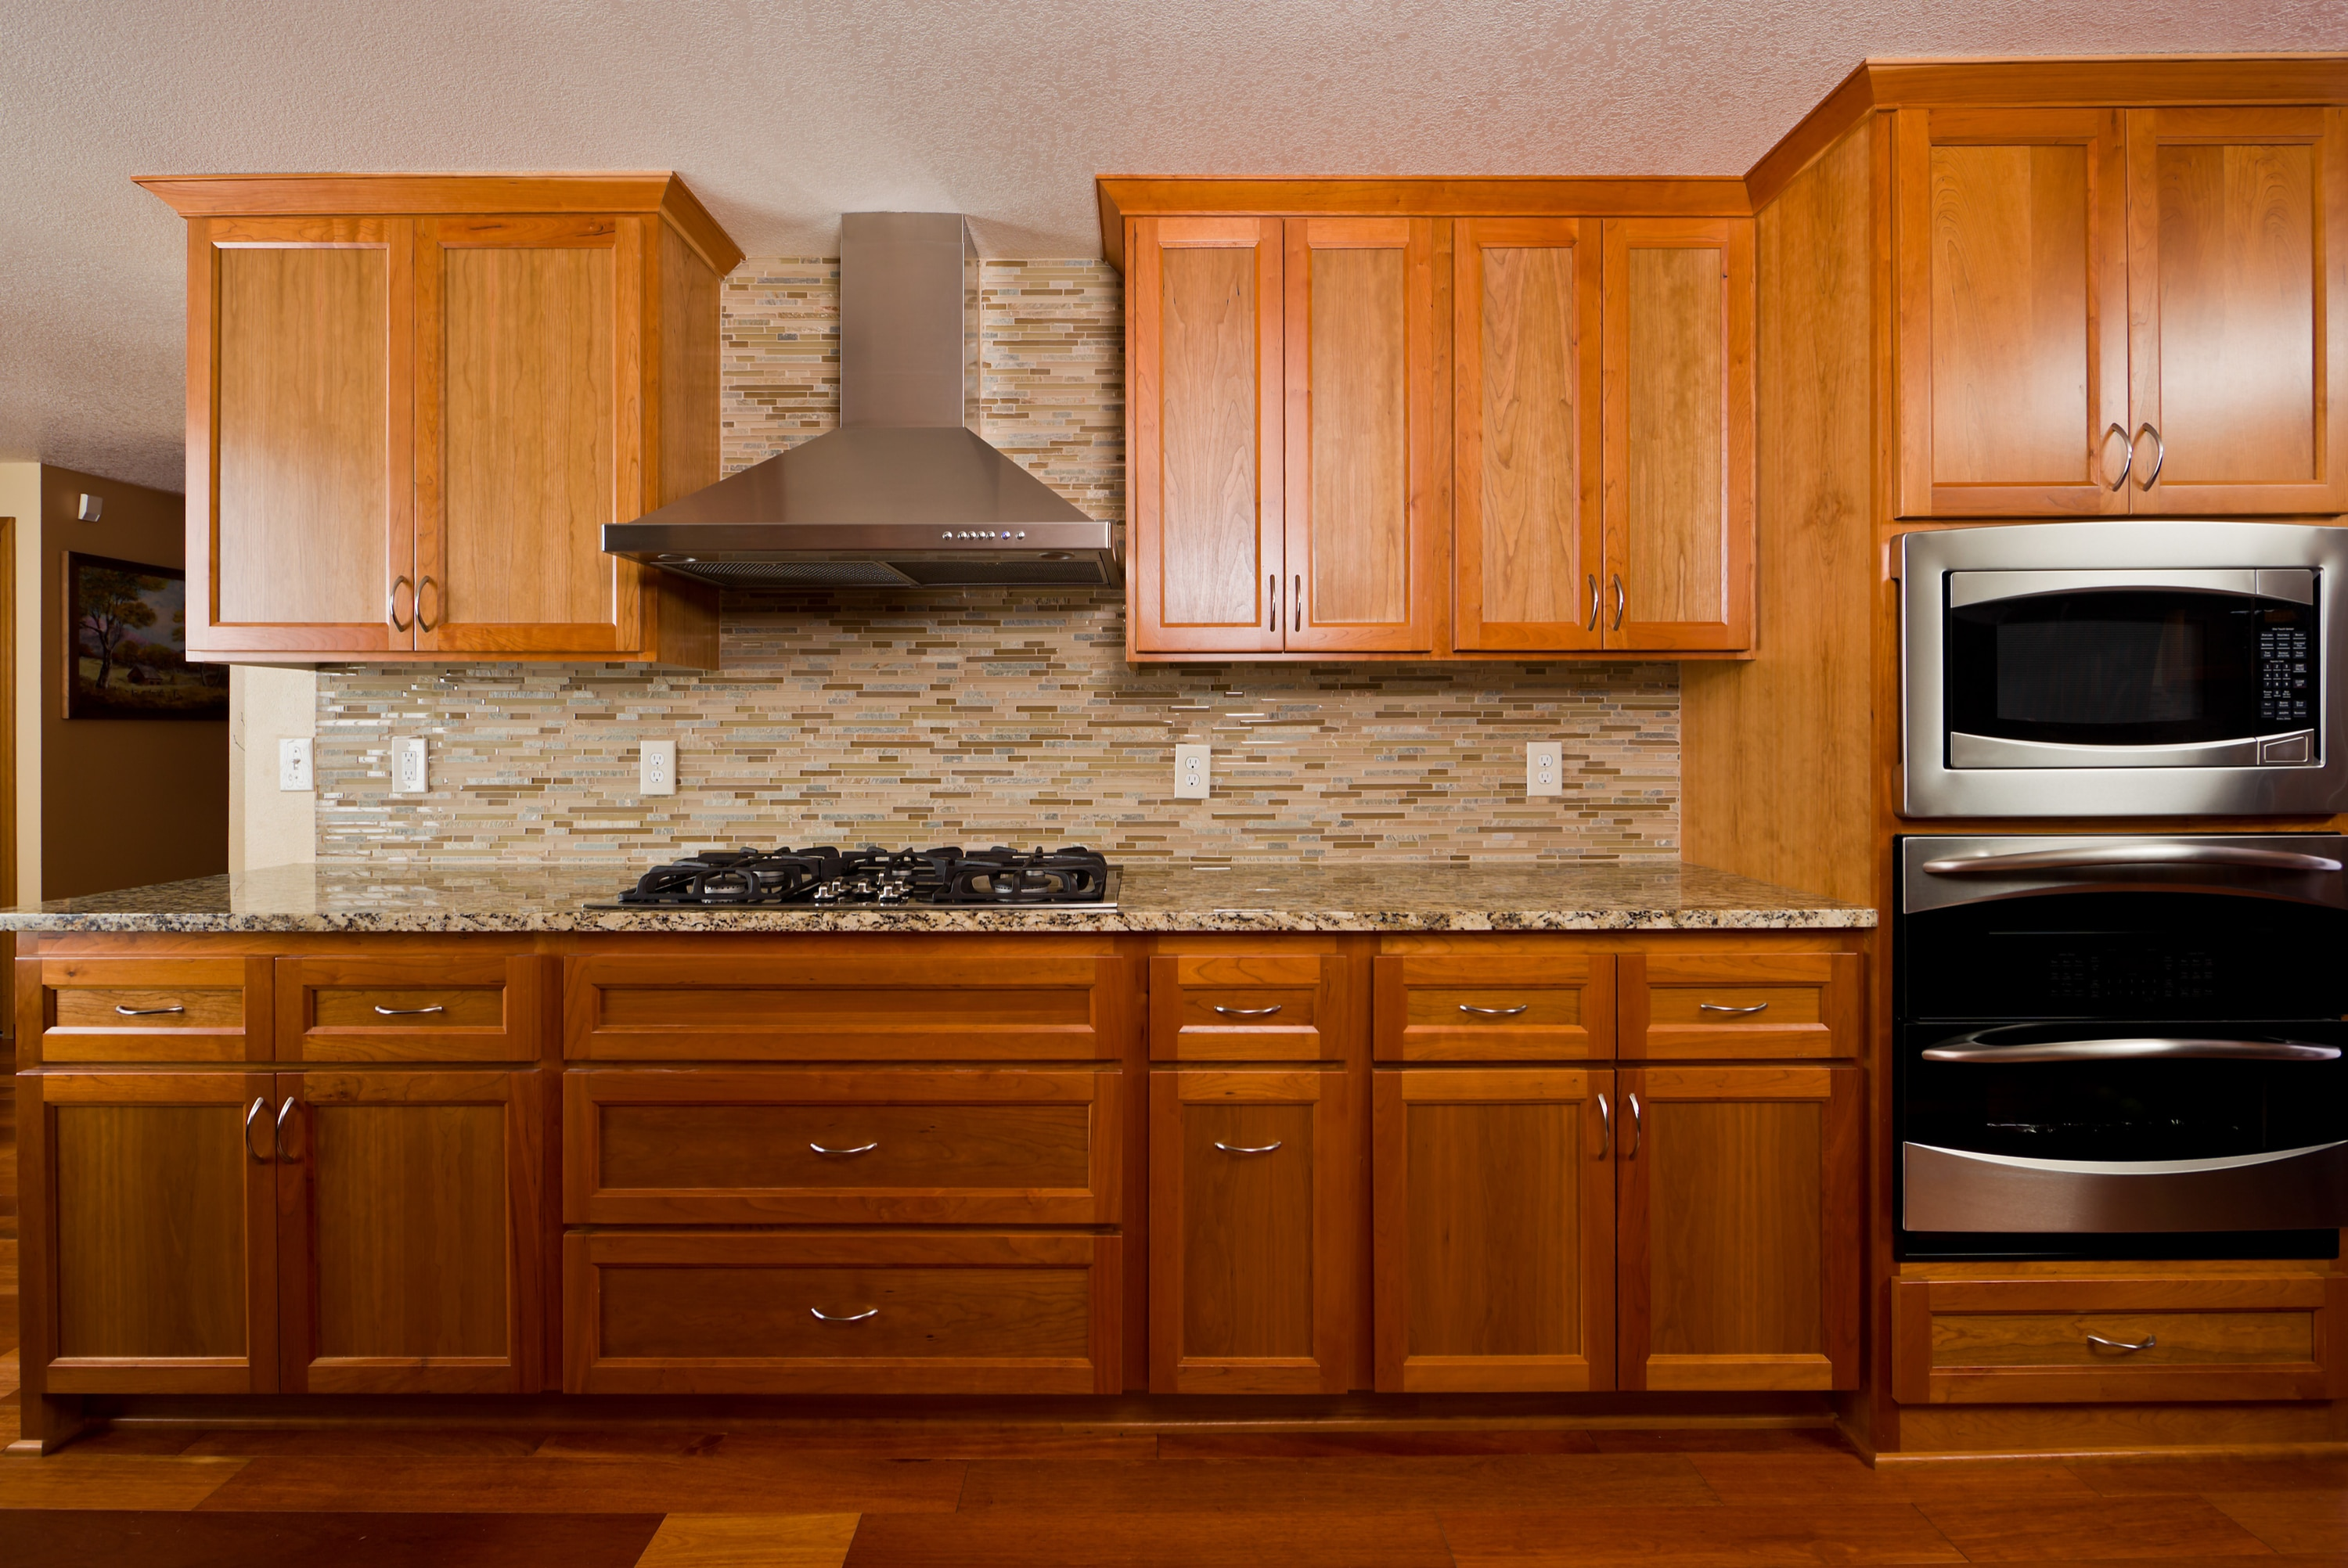 How To Refinish Kitchen Cabinets In Your Home